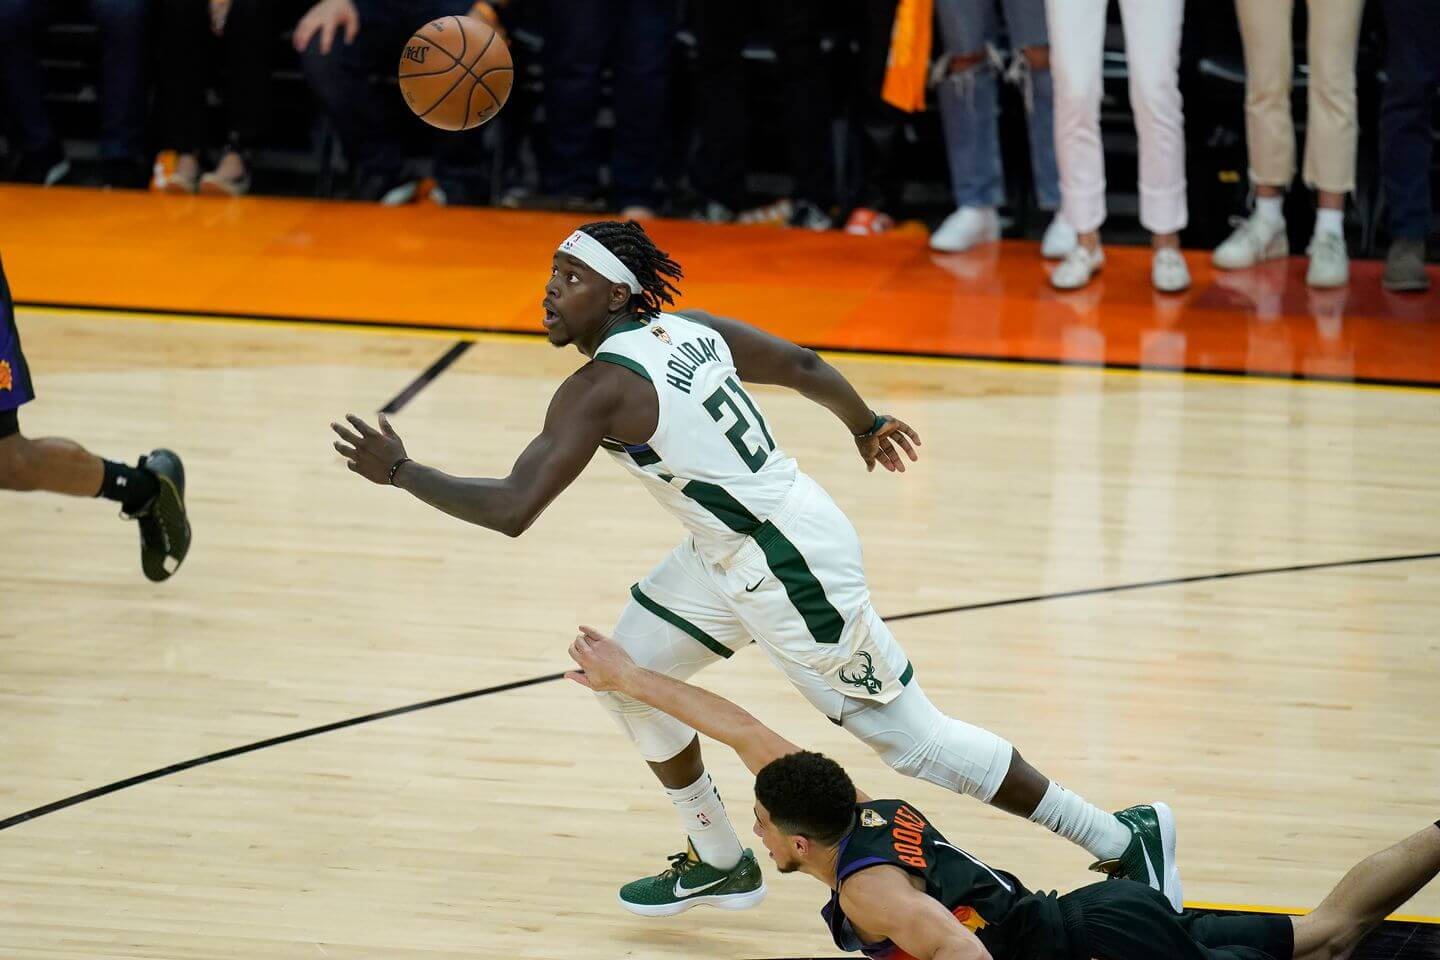 2021 NBA Finals: Jrue Holiday steal, alley-oop to Giannis seal Bucks' Game 5 win vs. Suns